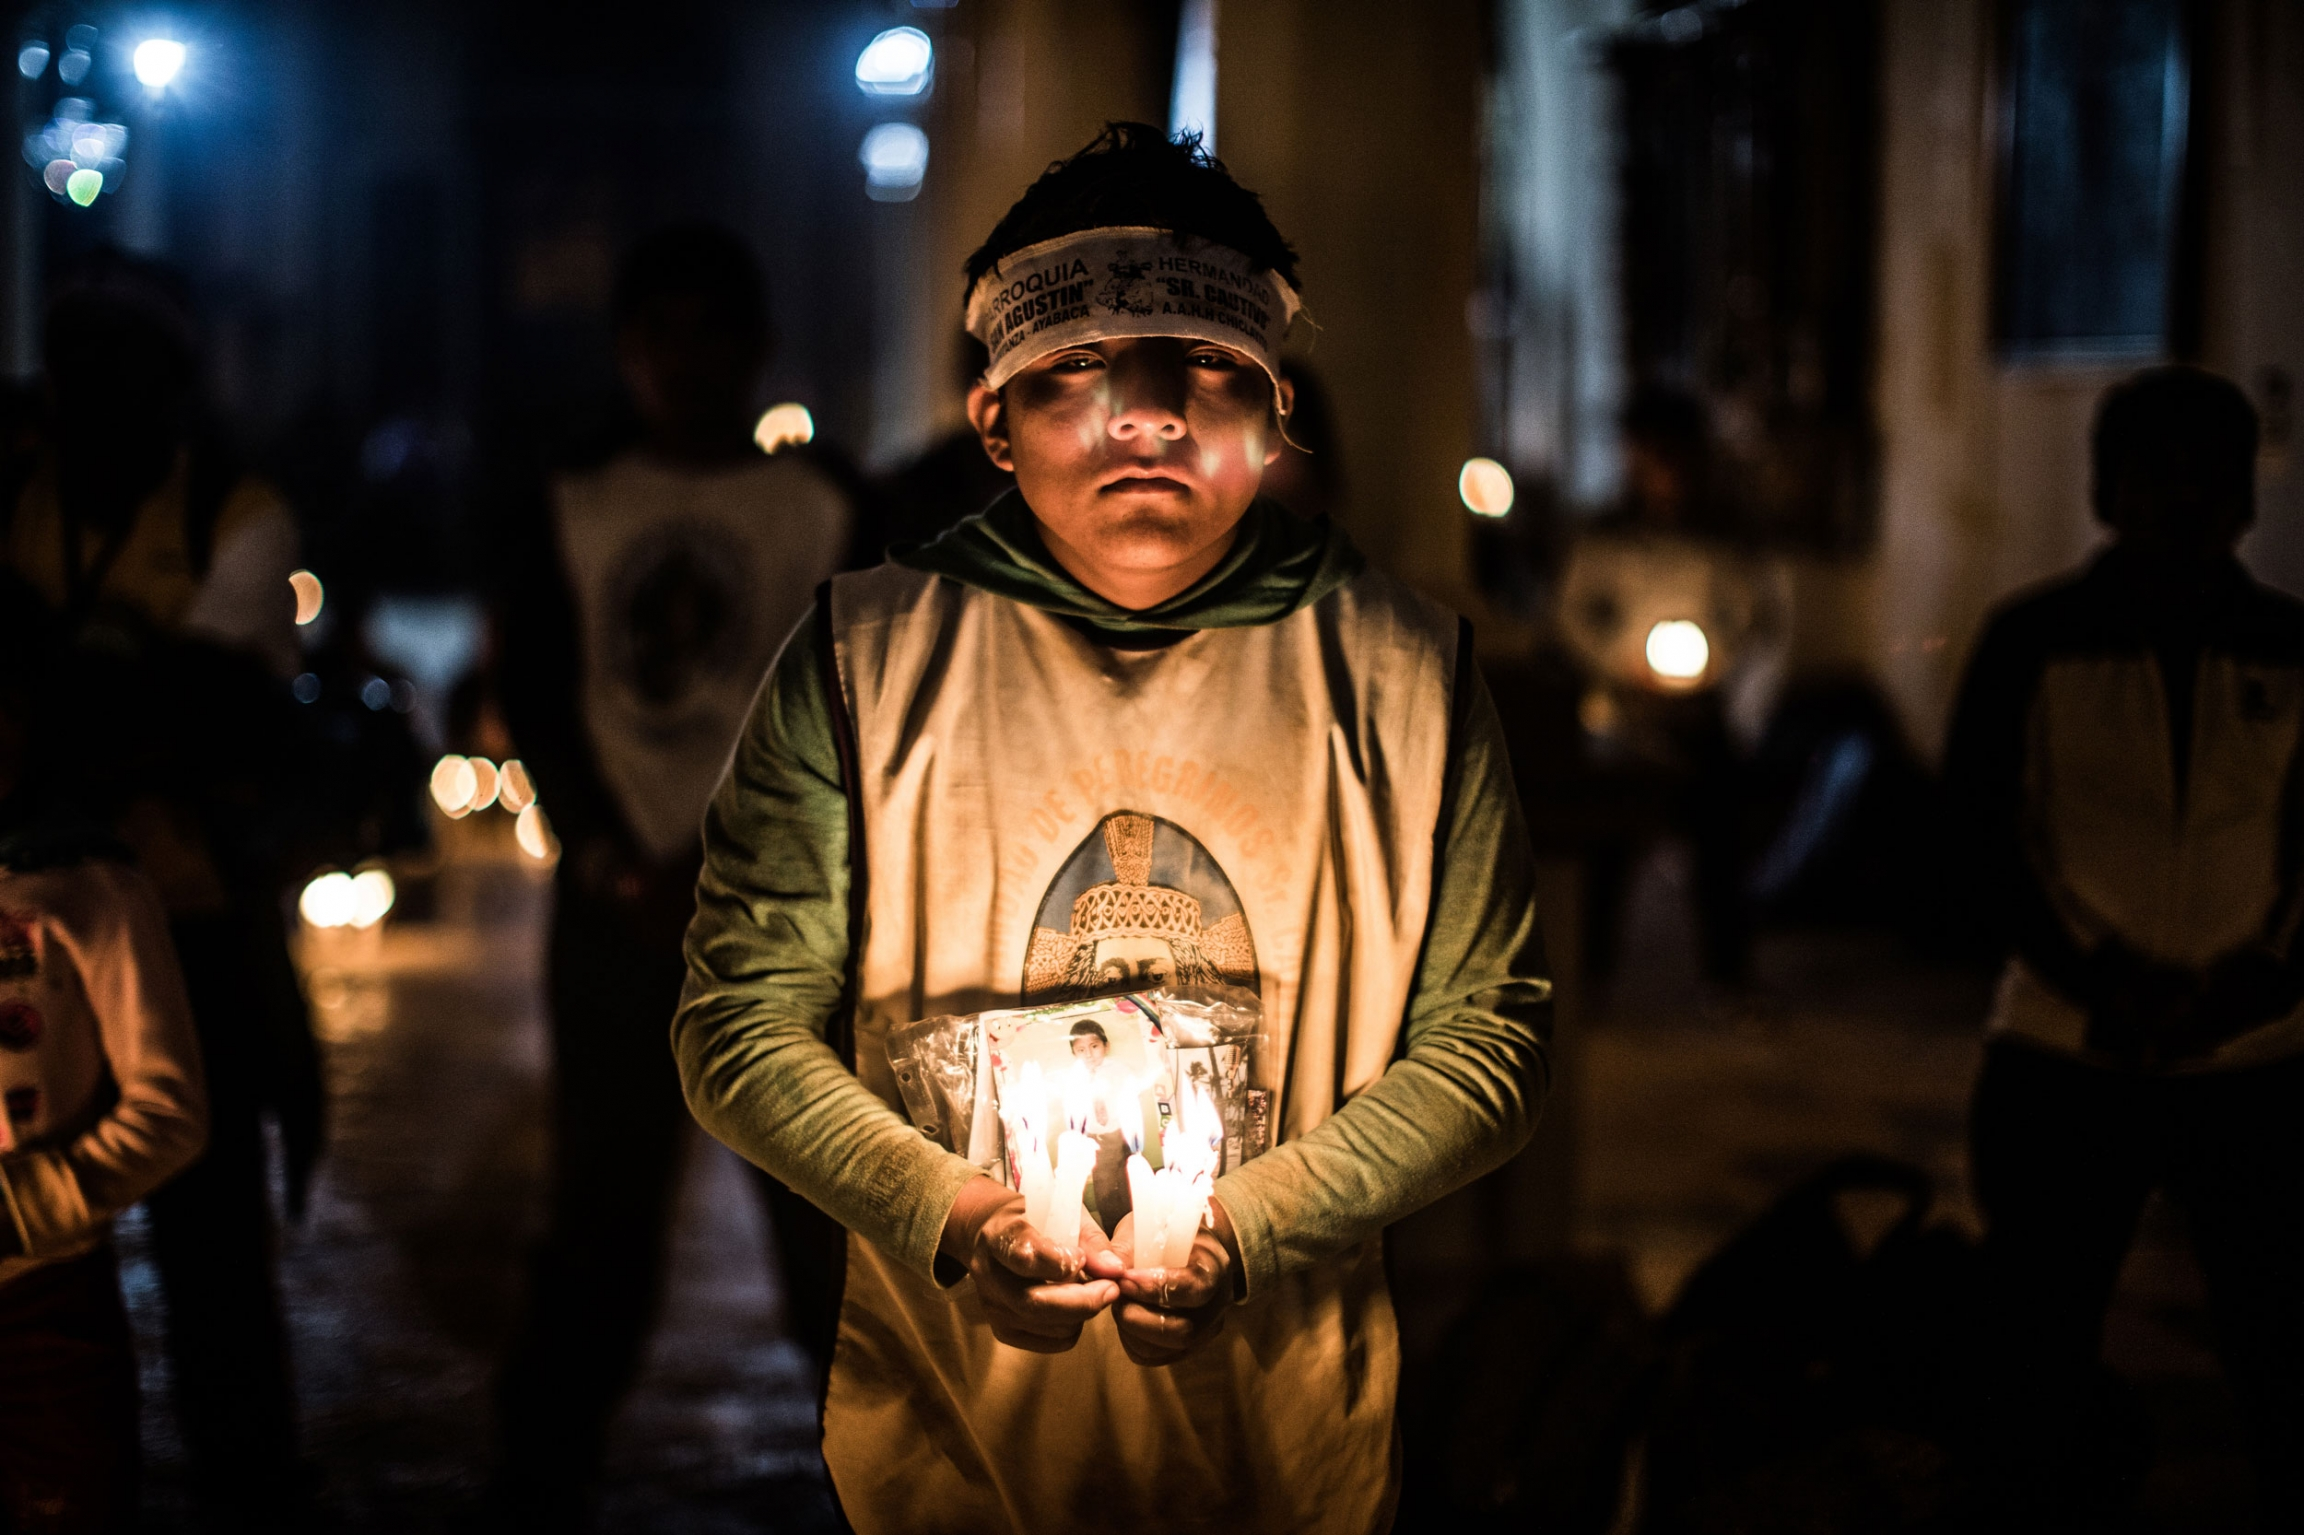 A you boy is shown holding several candles and a picture in a darkly lit photograph.